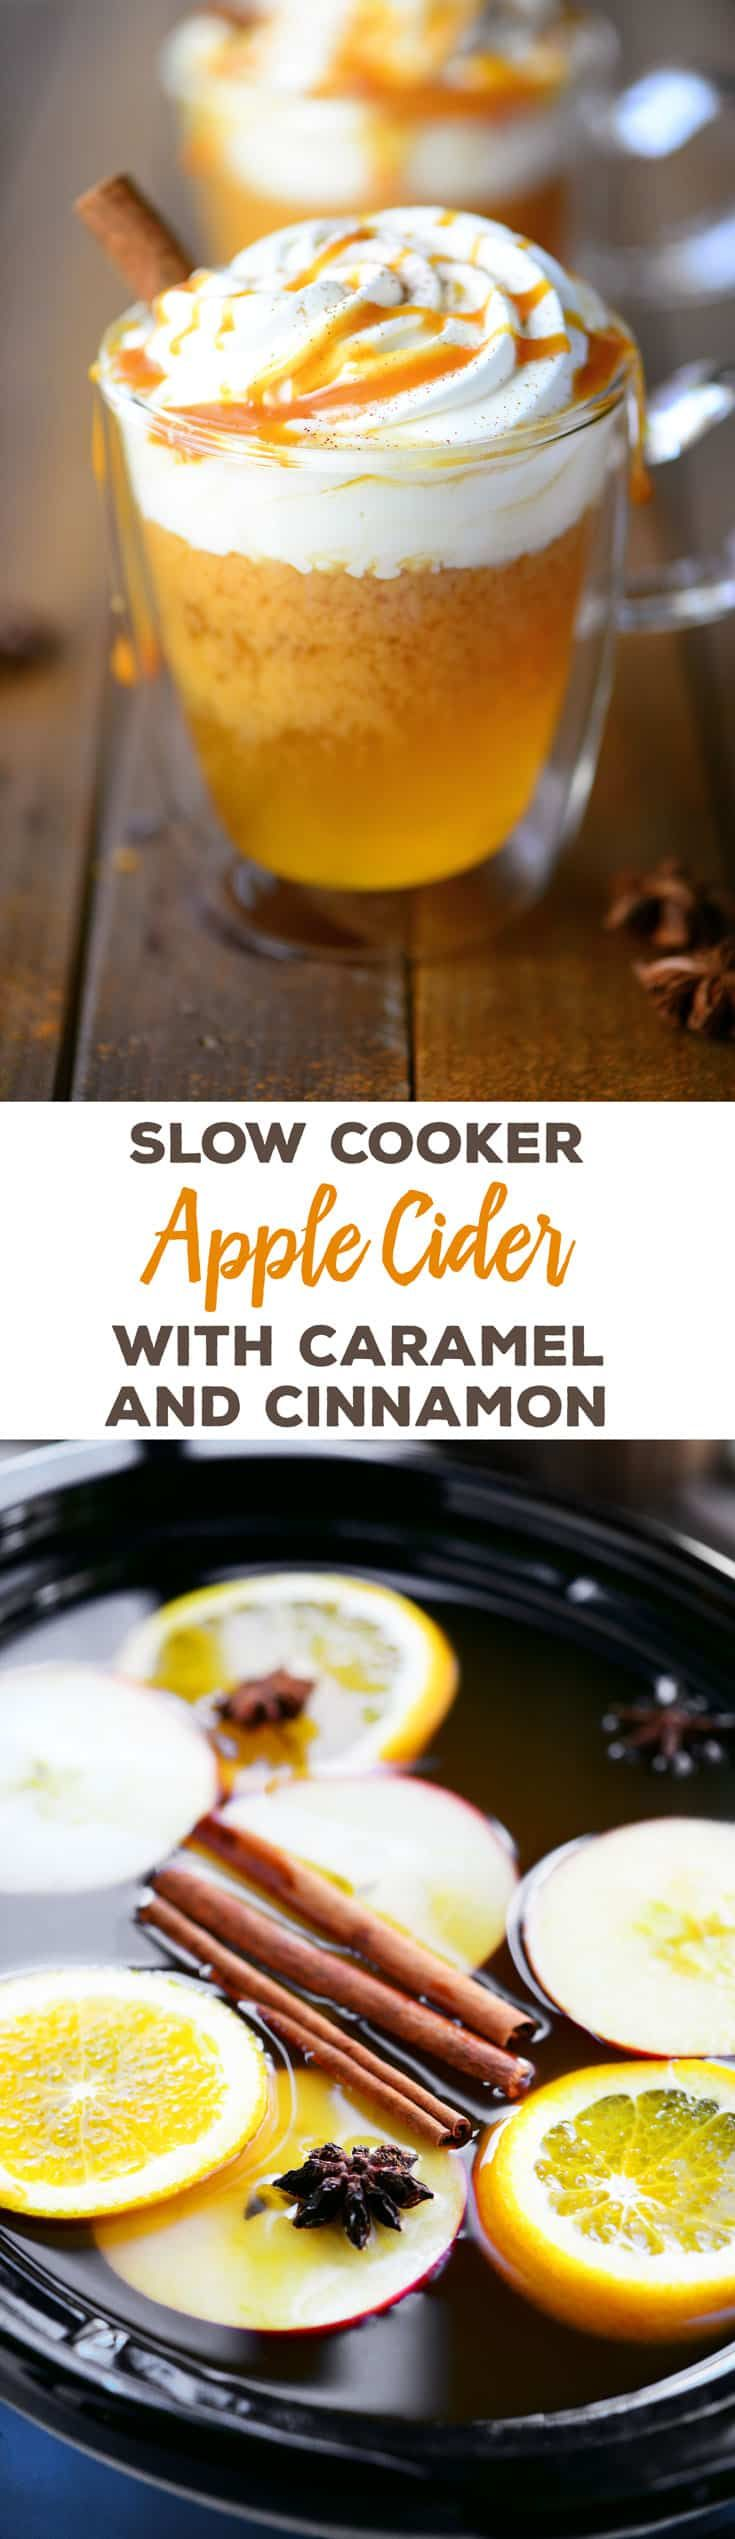 Slow Cooker Apple Cider with caramel sauce and cinnamon syrup is so easy to make. Serve it in the fall and winter for Halloween, Thanksgiving and Christmas. #slowcookerrecipes #applecider